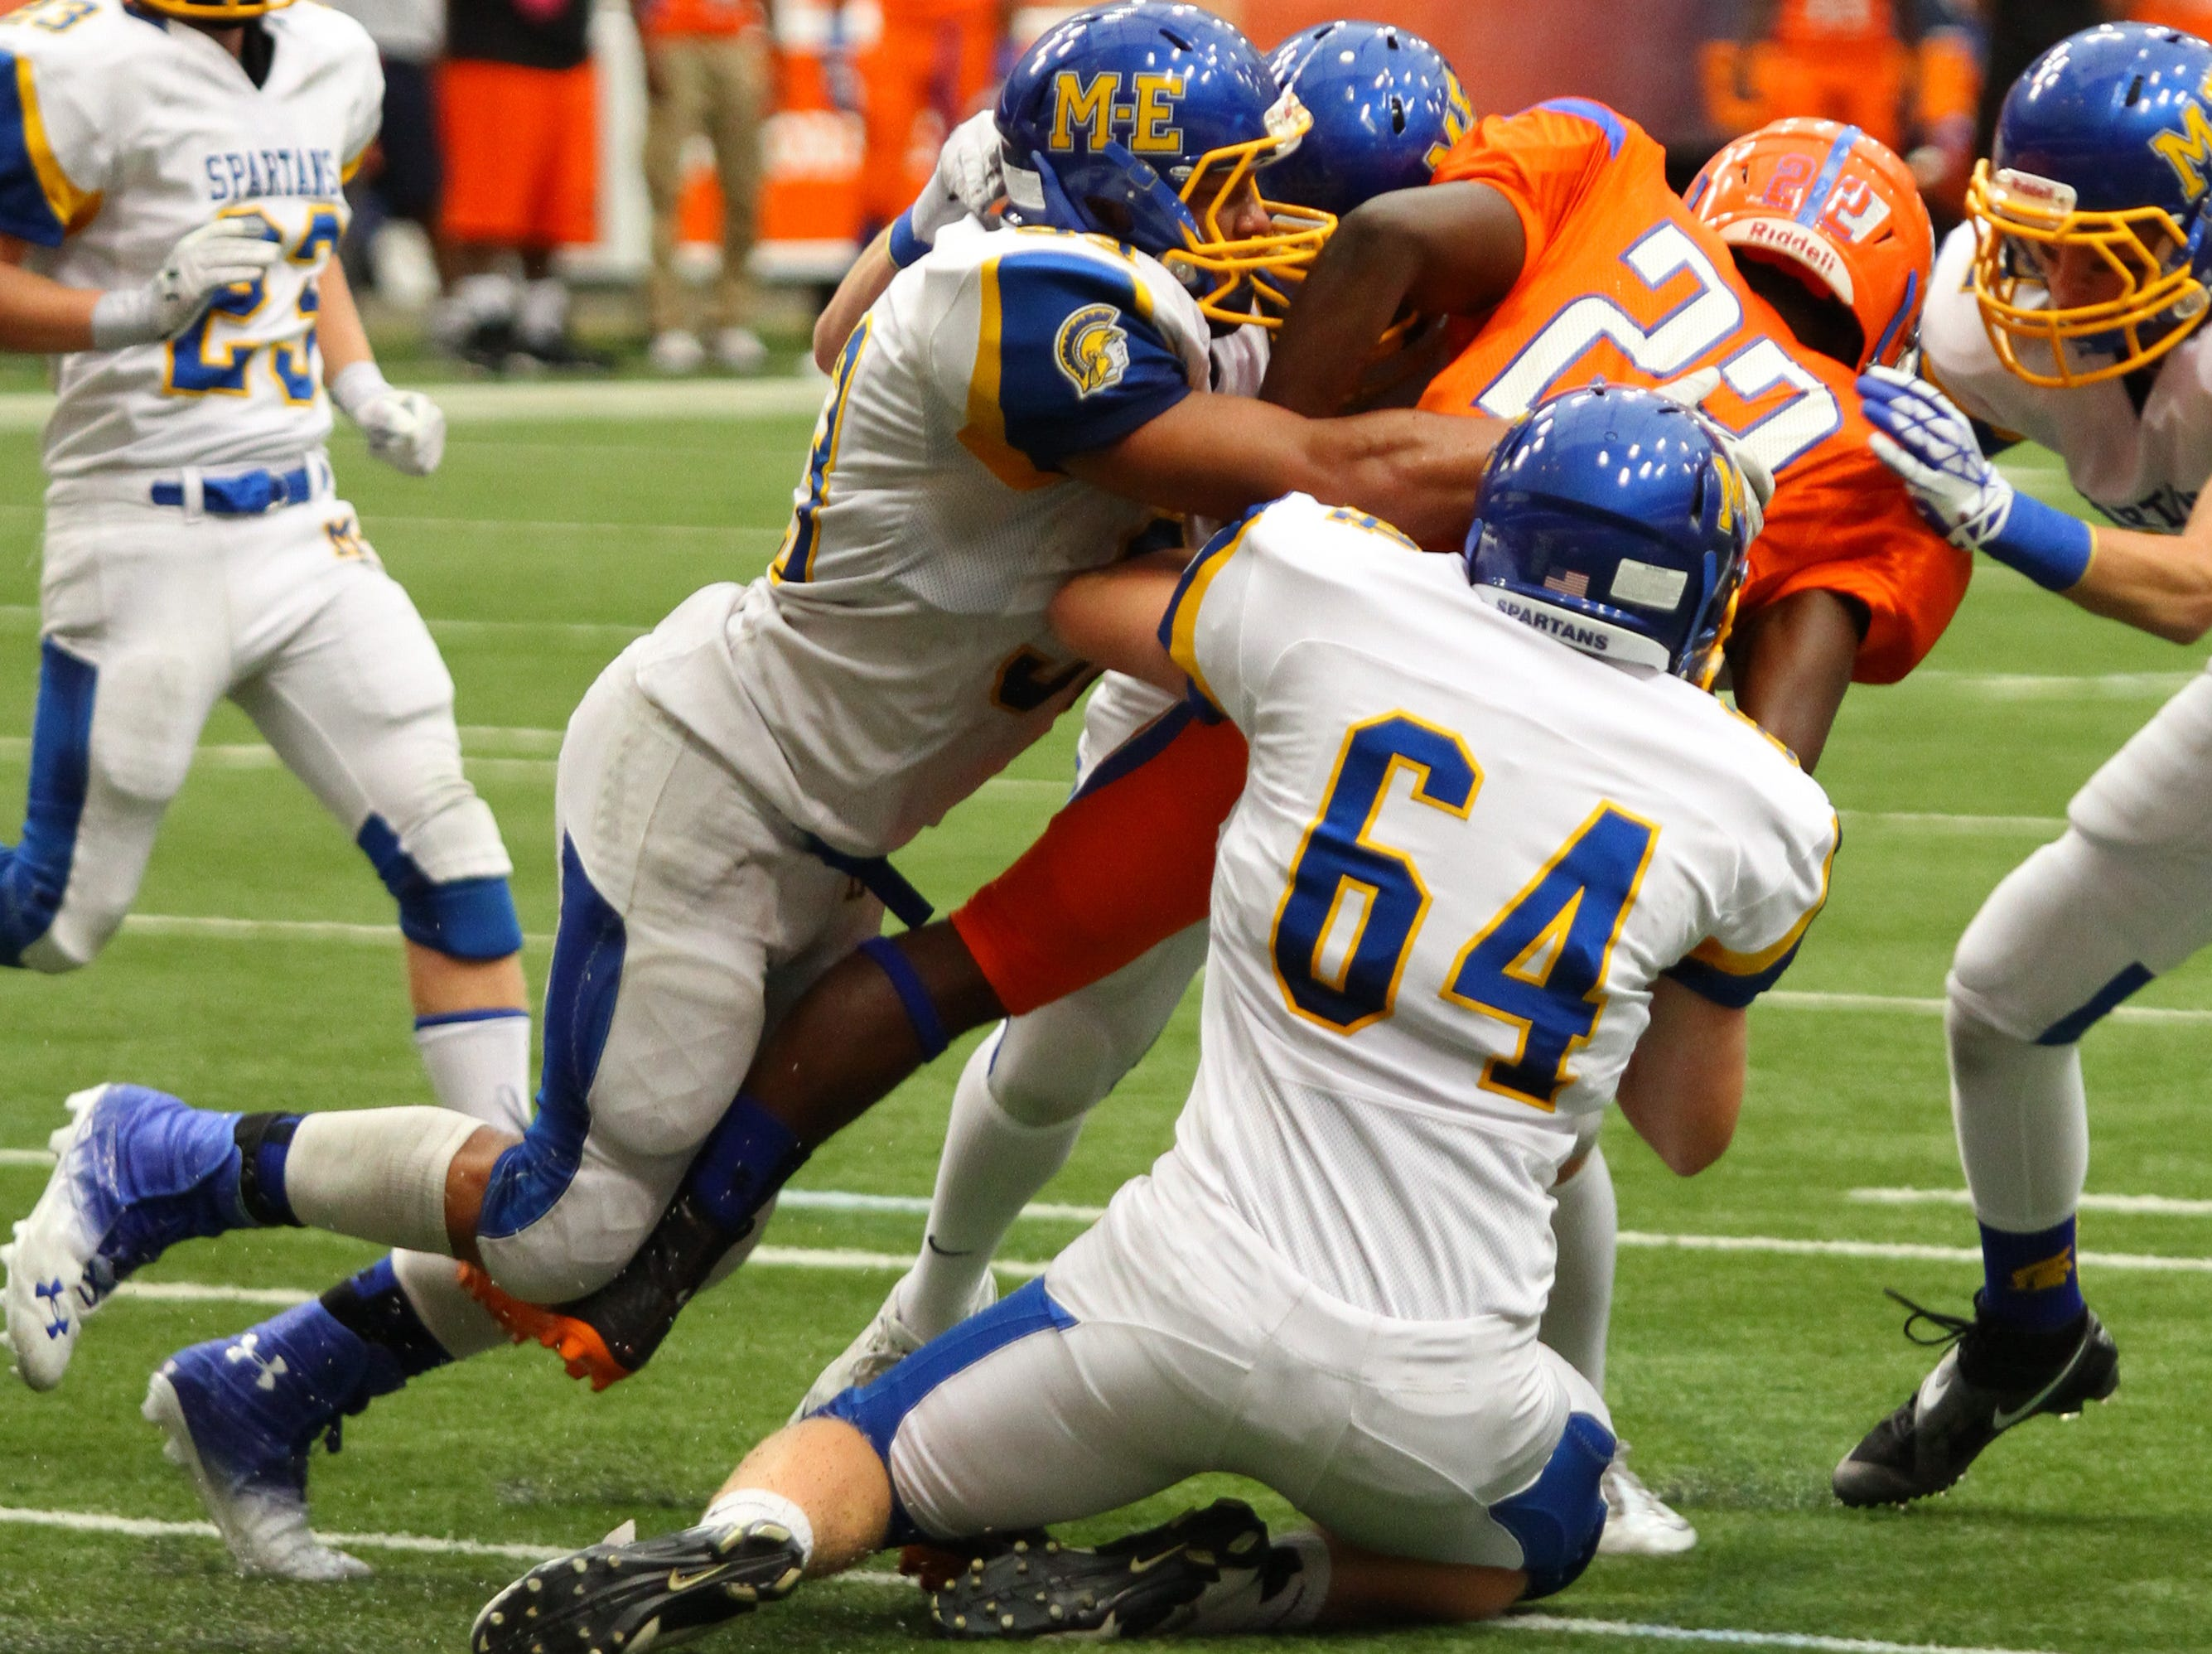 Maine-Endwell's Hunter Hazen makes the initial hit as a swarm of M-E defenders help out in a 2013 game against Nottingham.